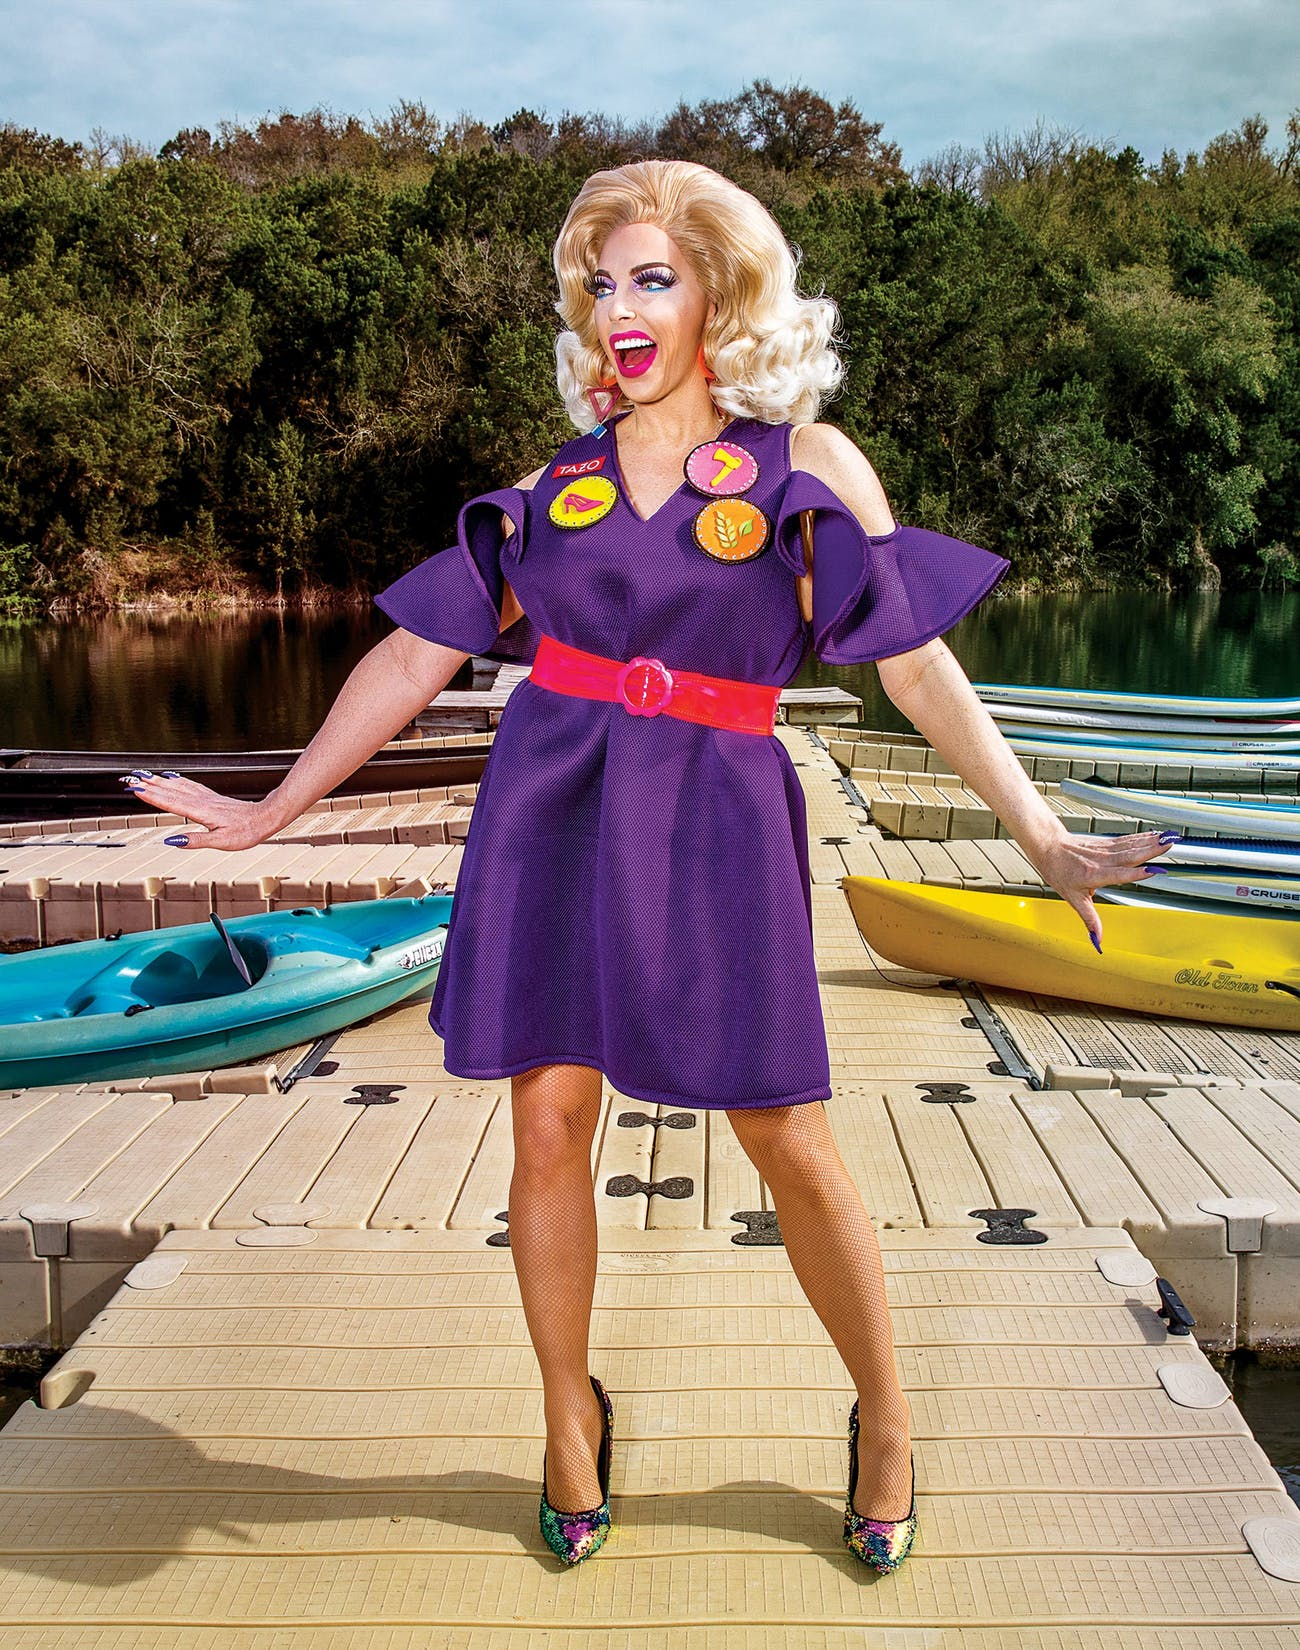 Alyssa Edwards Camp